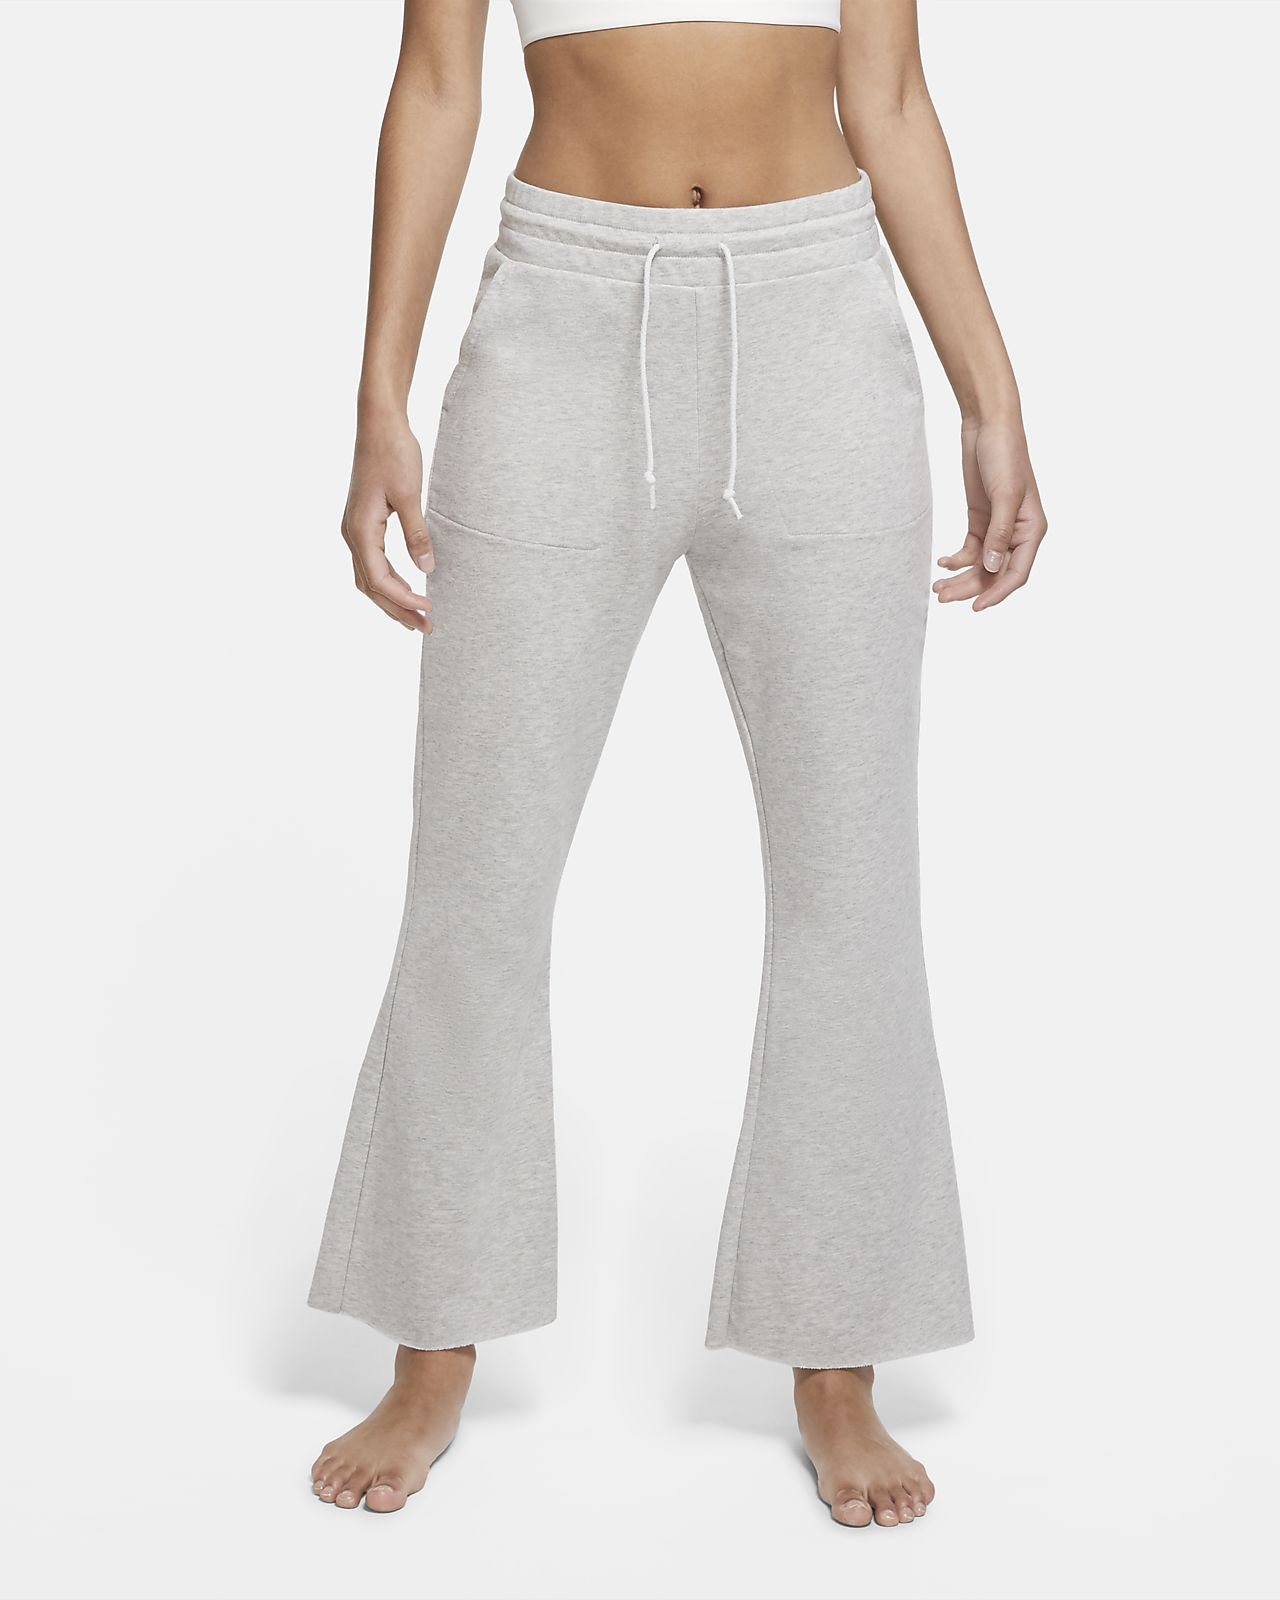 Nike Yoga Women's 7/8 Pants